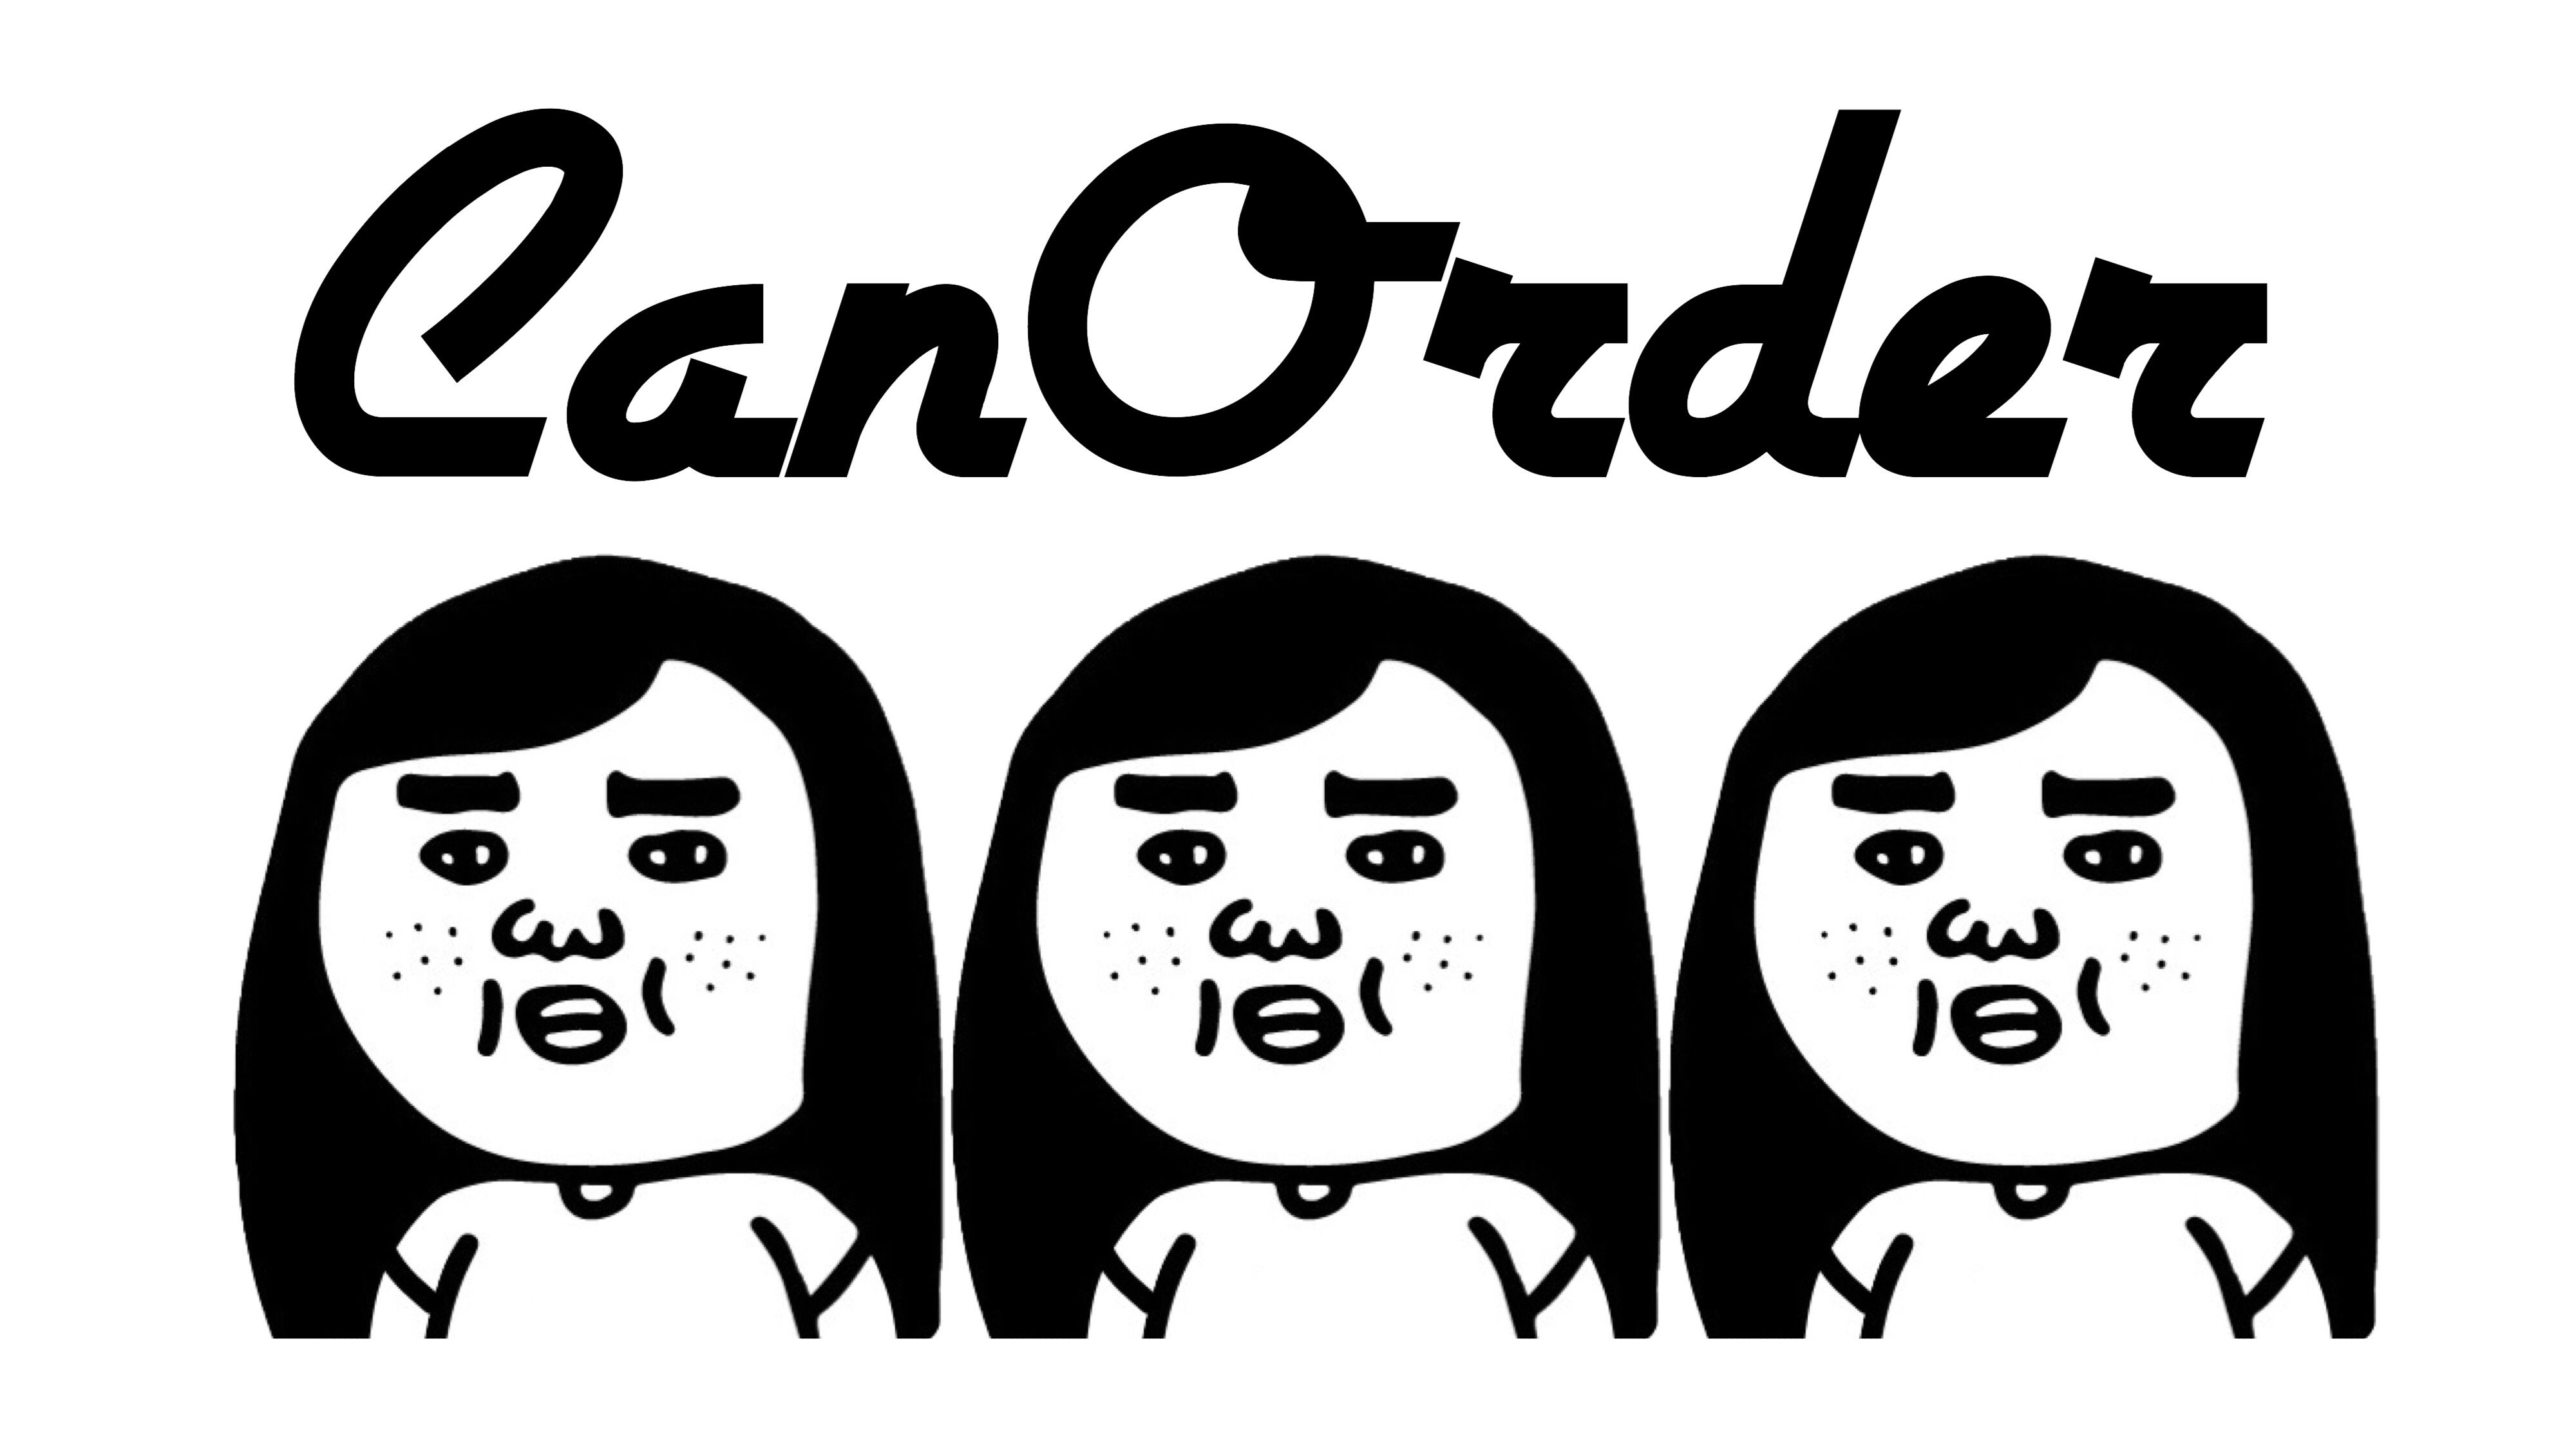 canorder